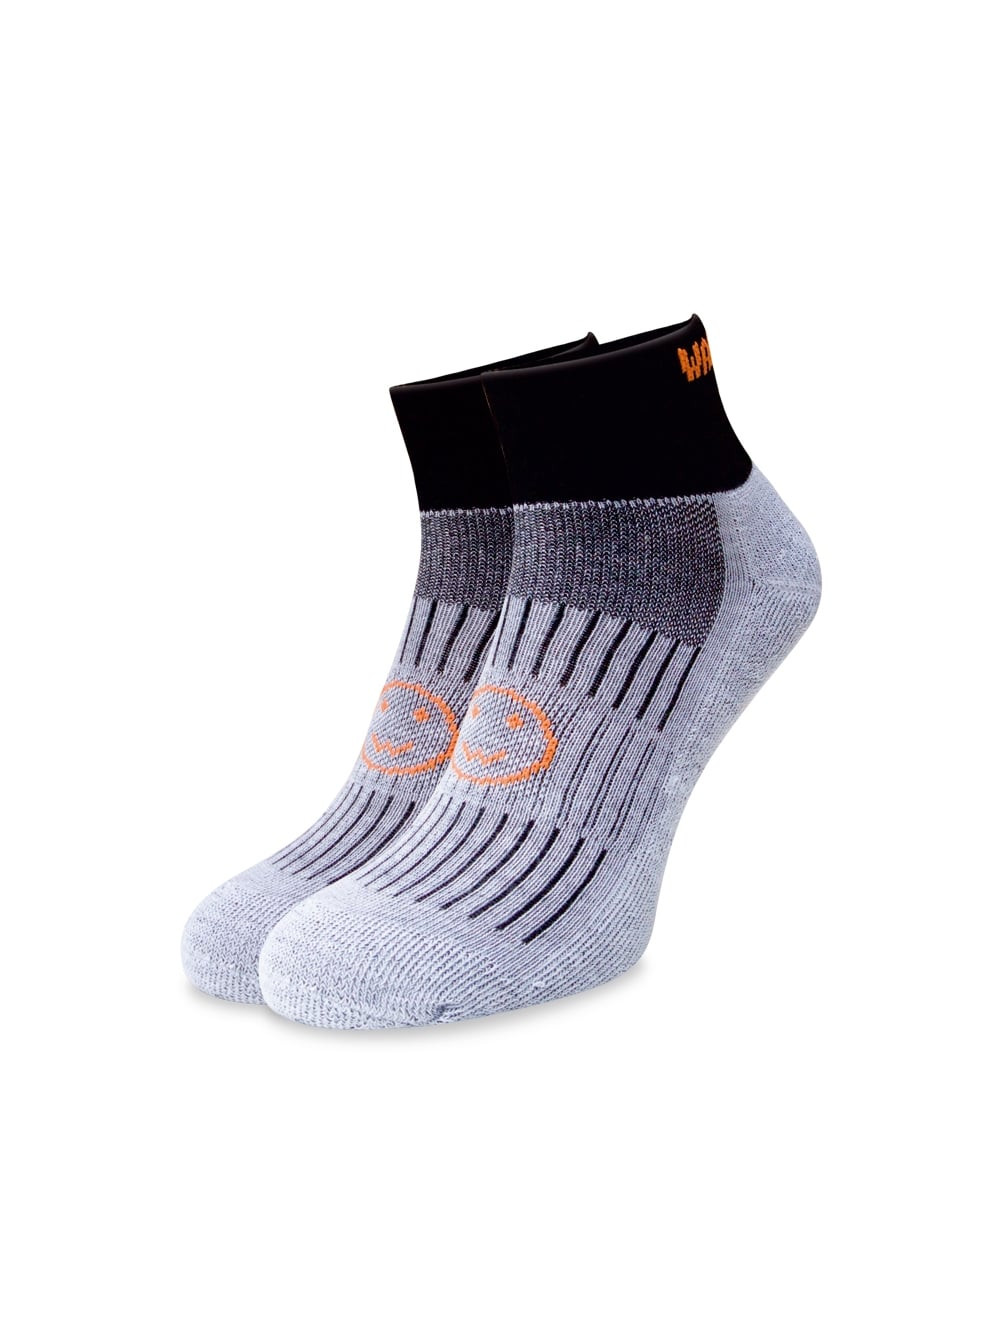 Wacky Sox: Black Ankle Running Socks